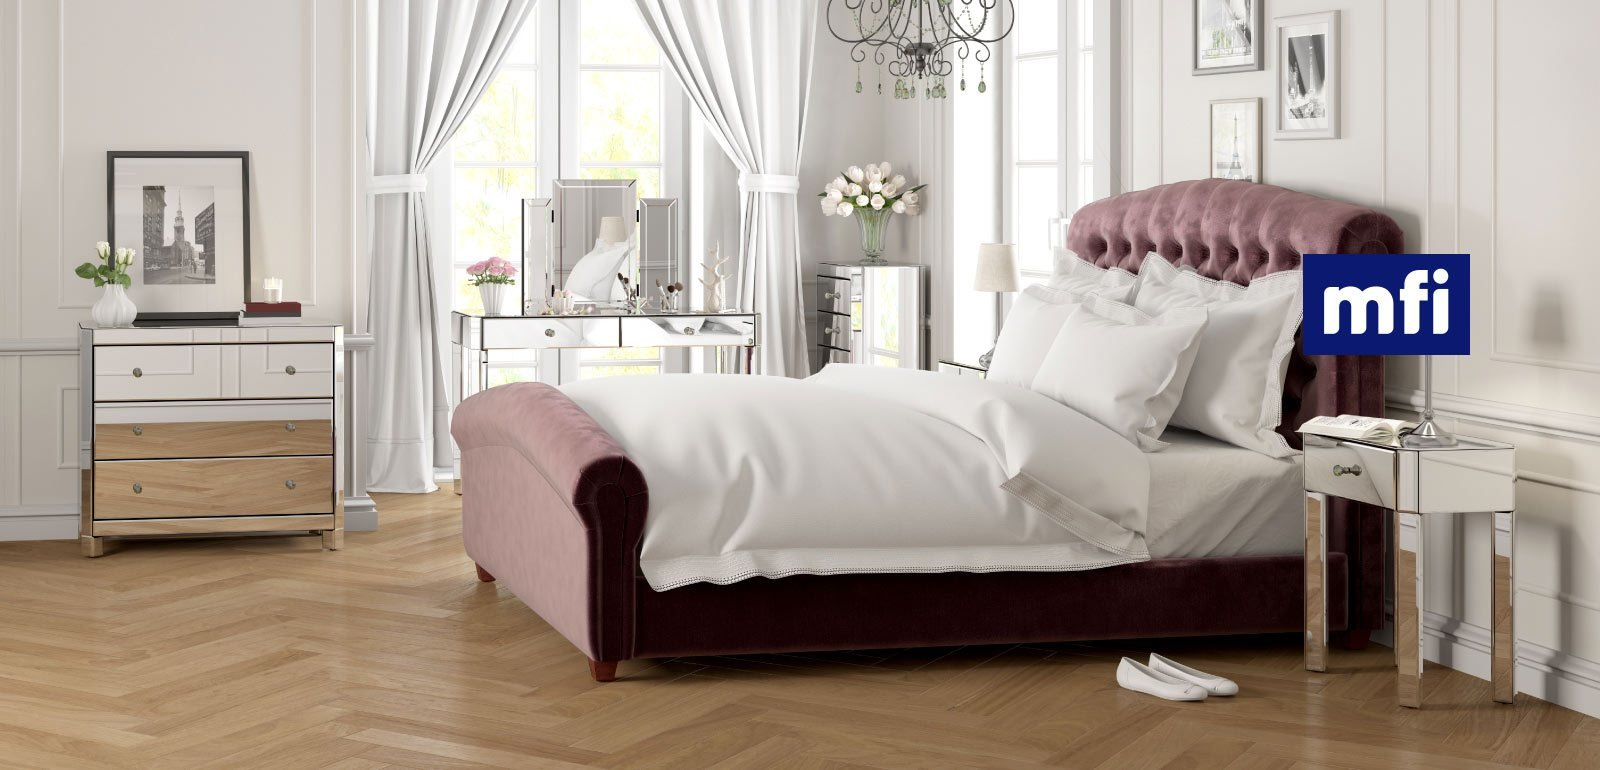 Best Mirrored Glass Bedroom Furniture Victoriaplum Com With Pictures